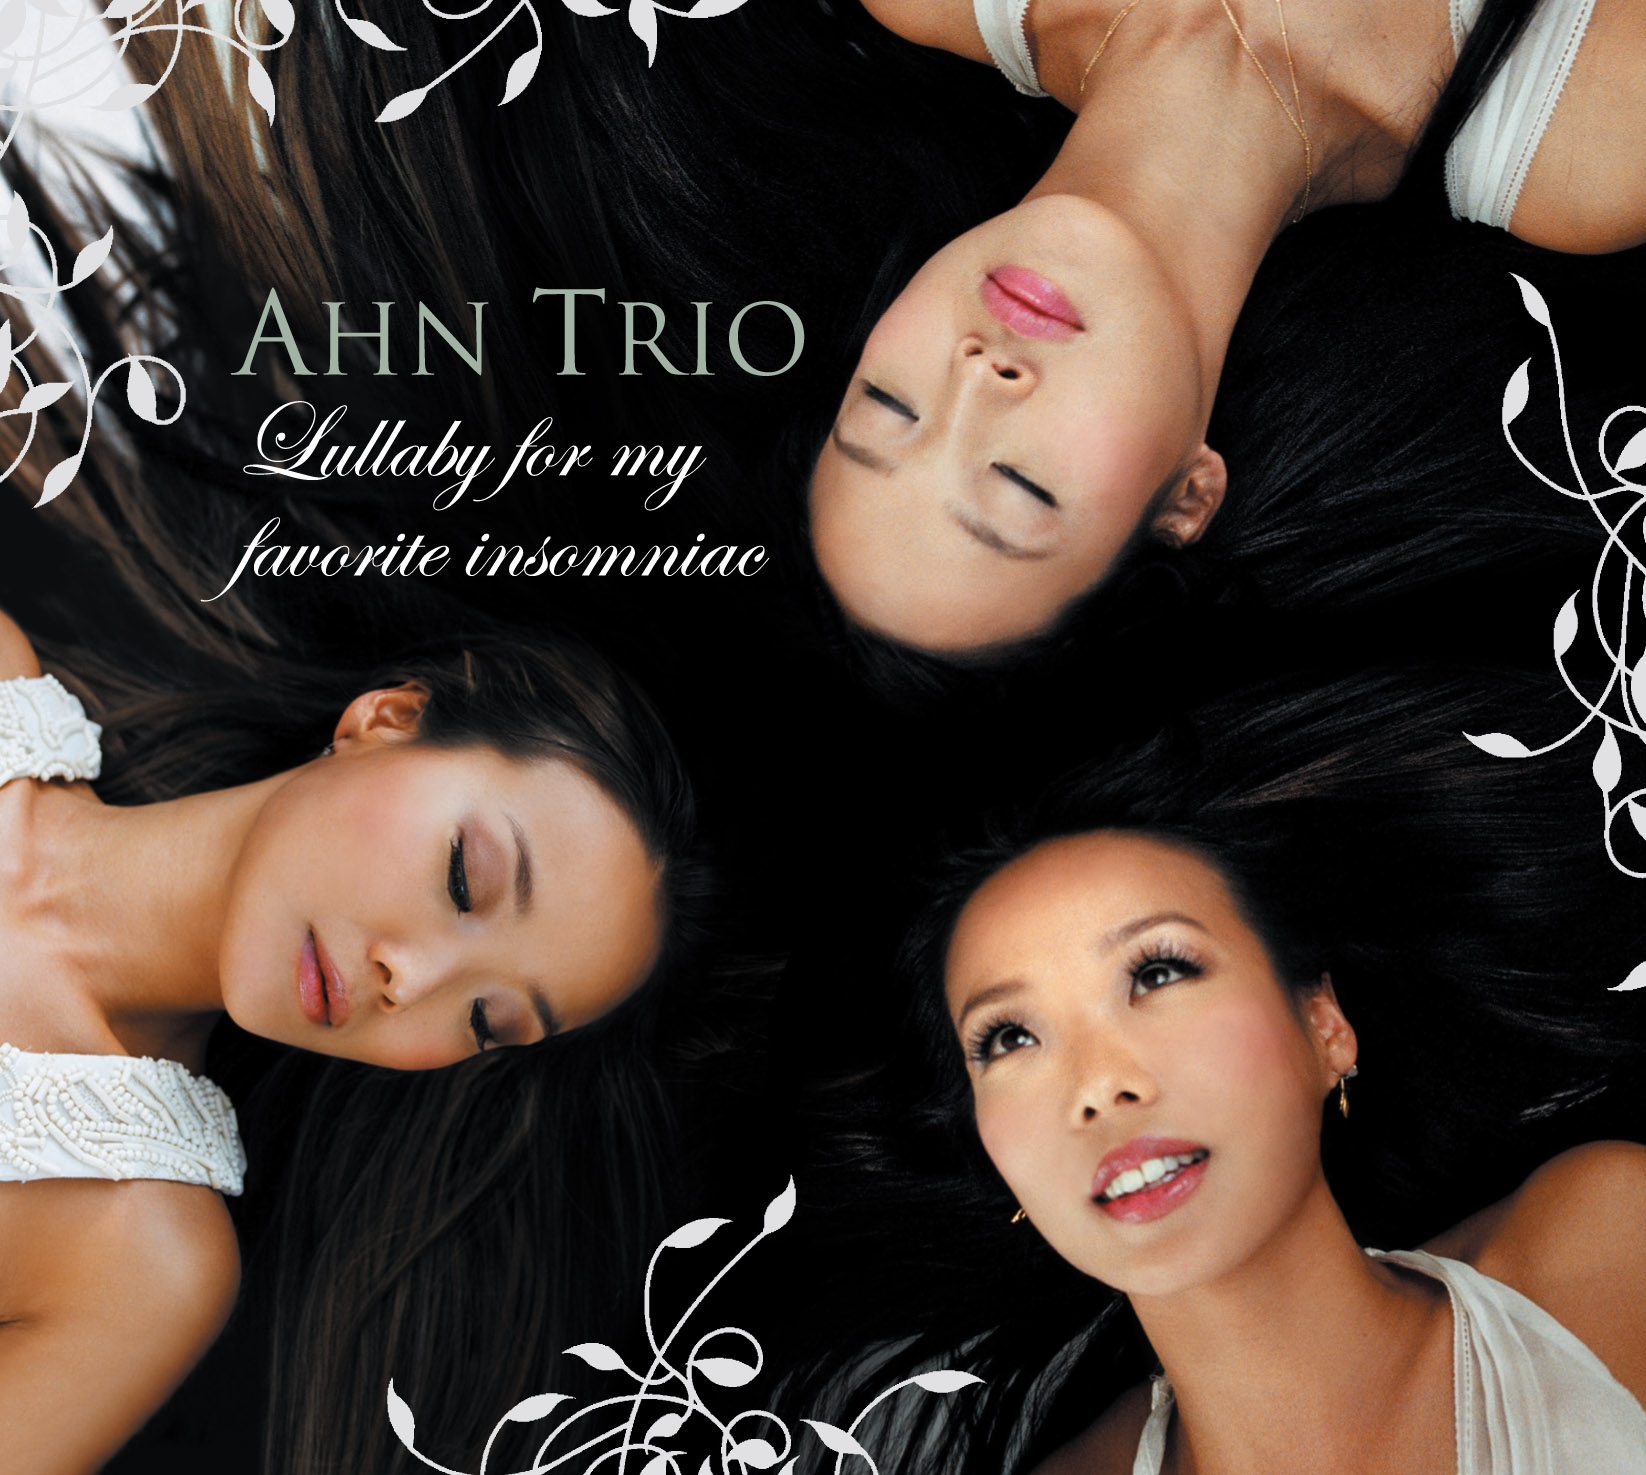 ahn trio cd cover